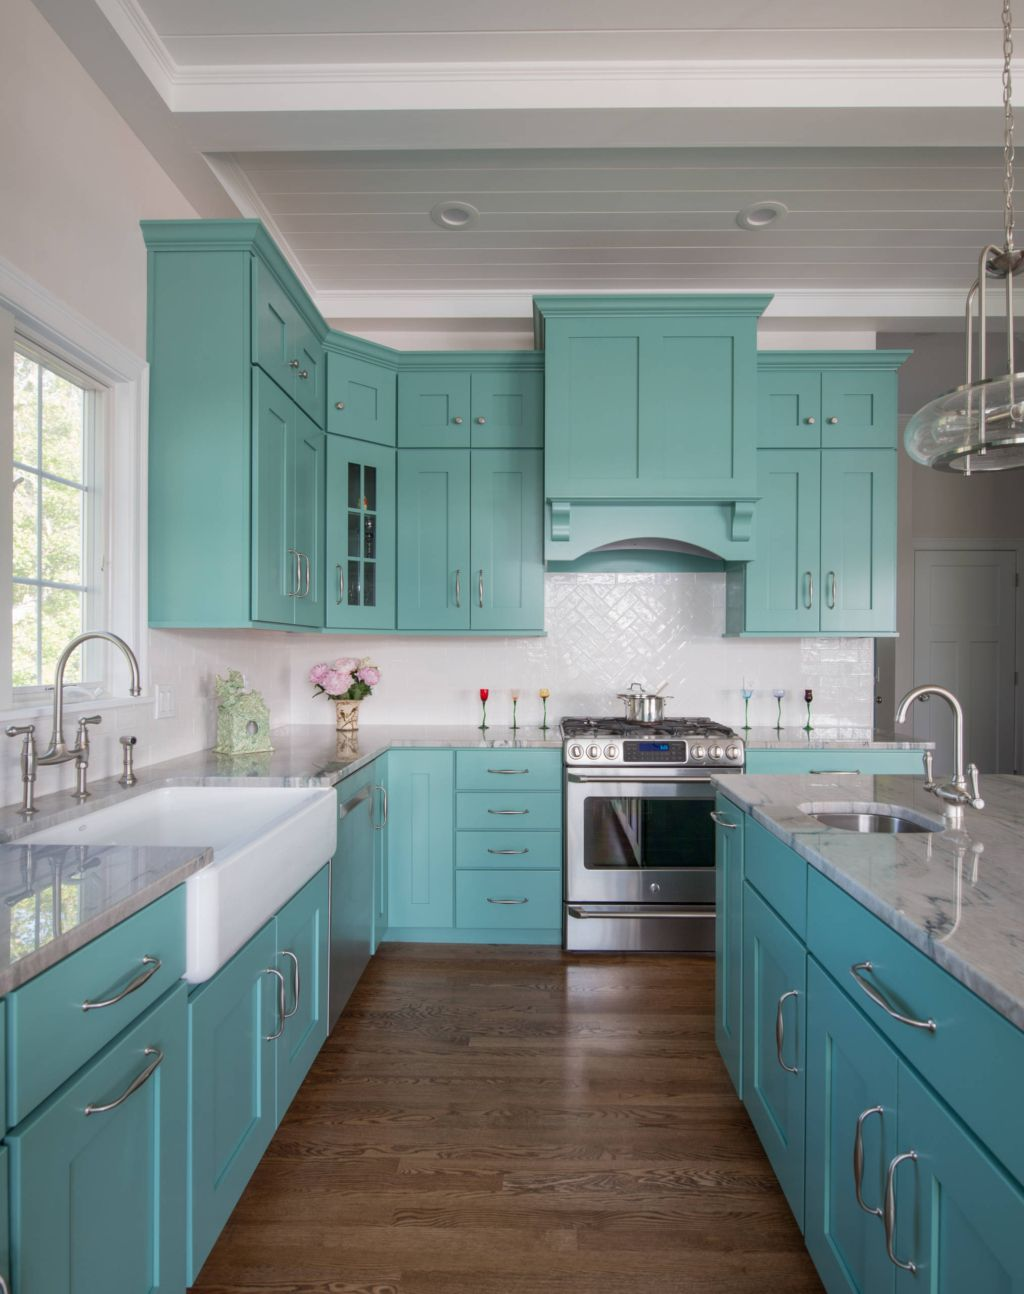 Mikayla Valois Riverhead Building Supply Turquoise Kitchen Cabinets Turquoise Kitchen Aqua Kitchen